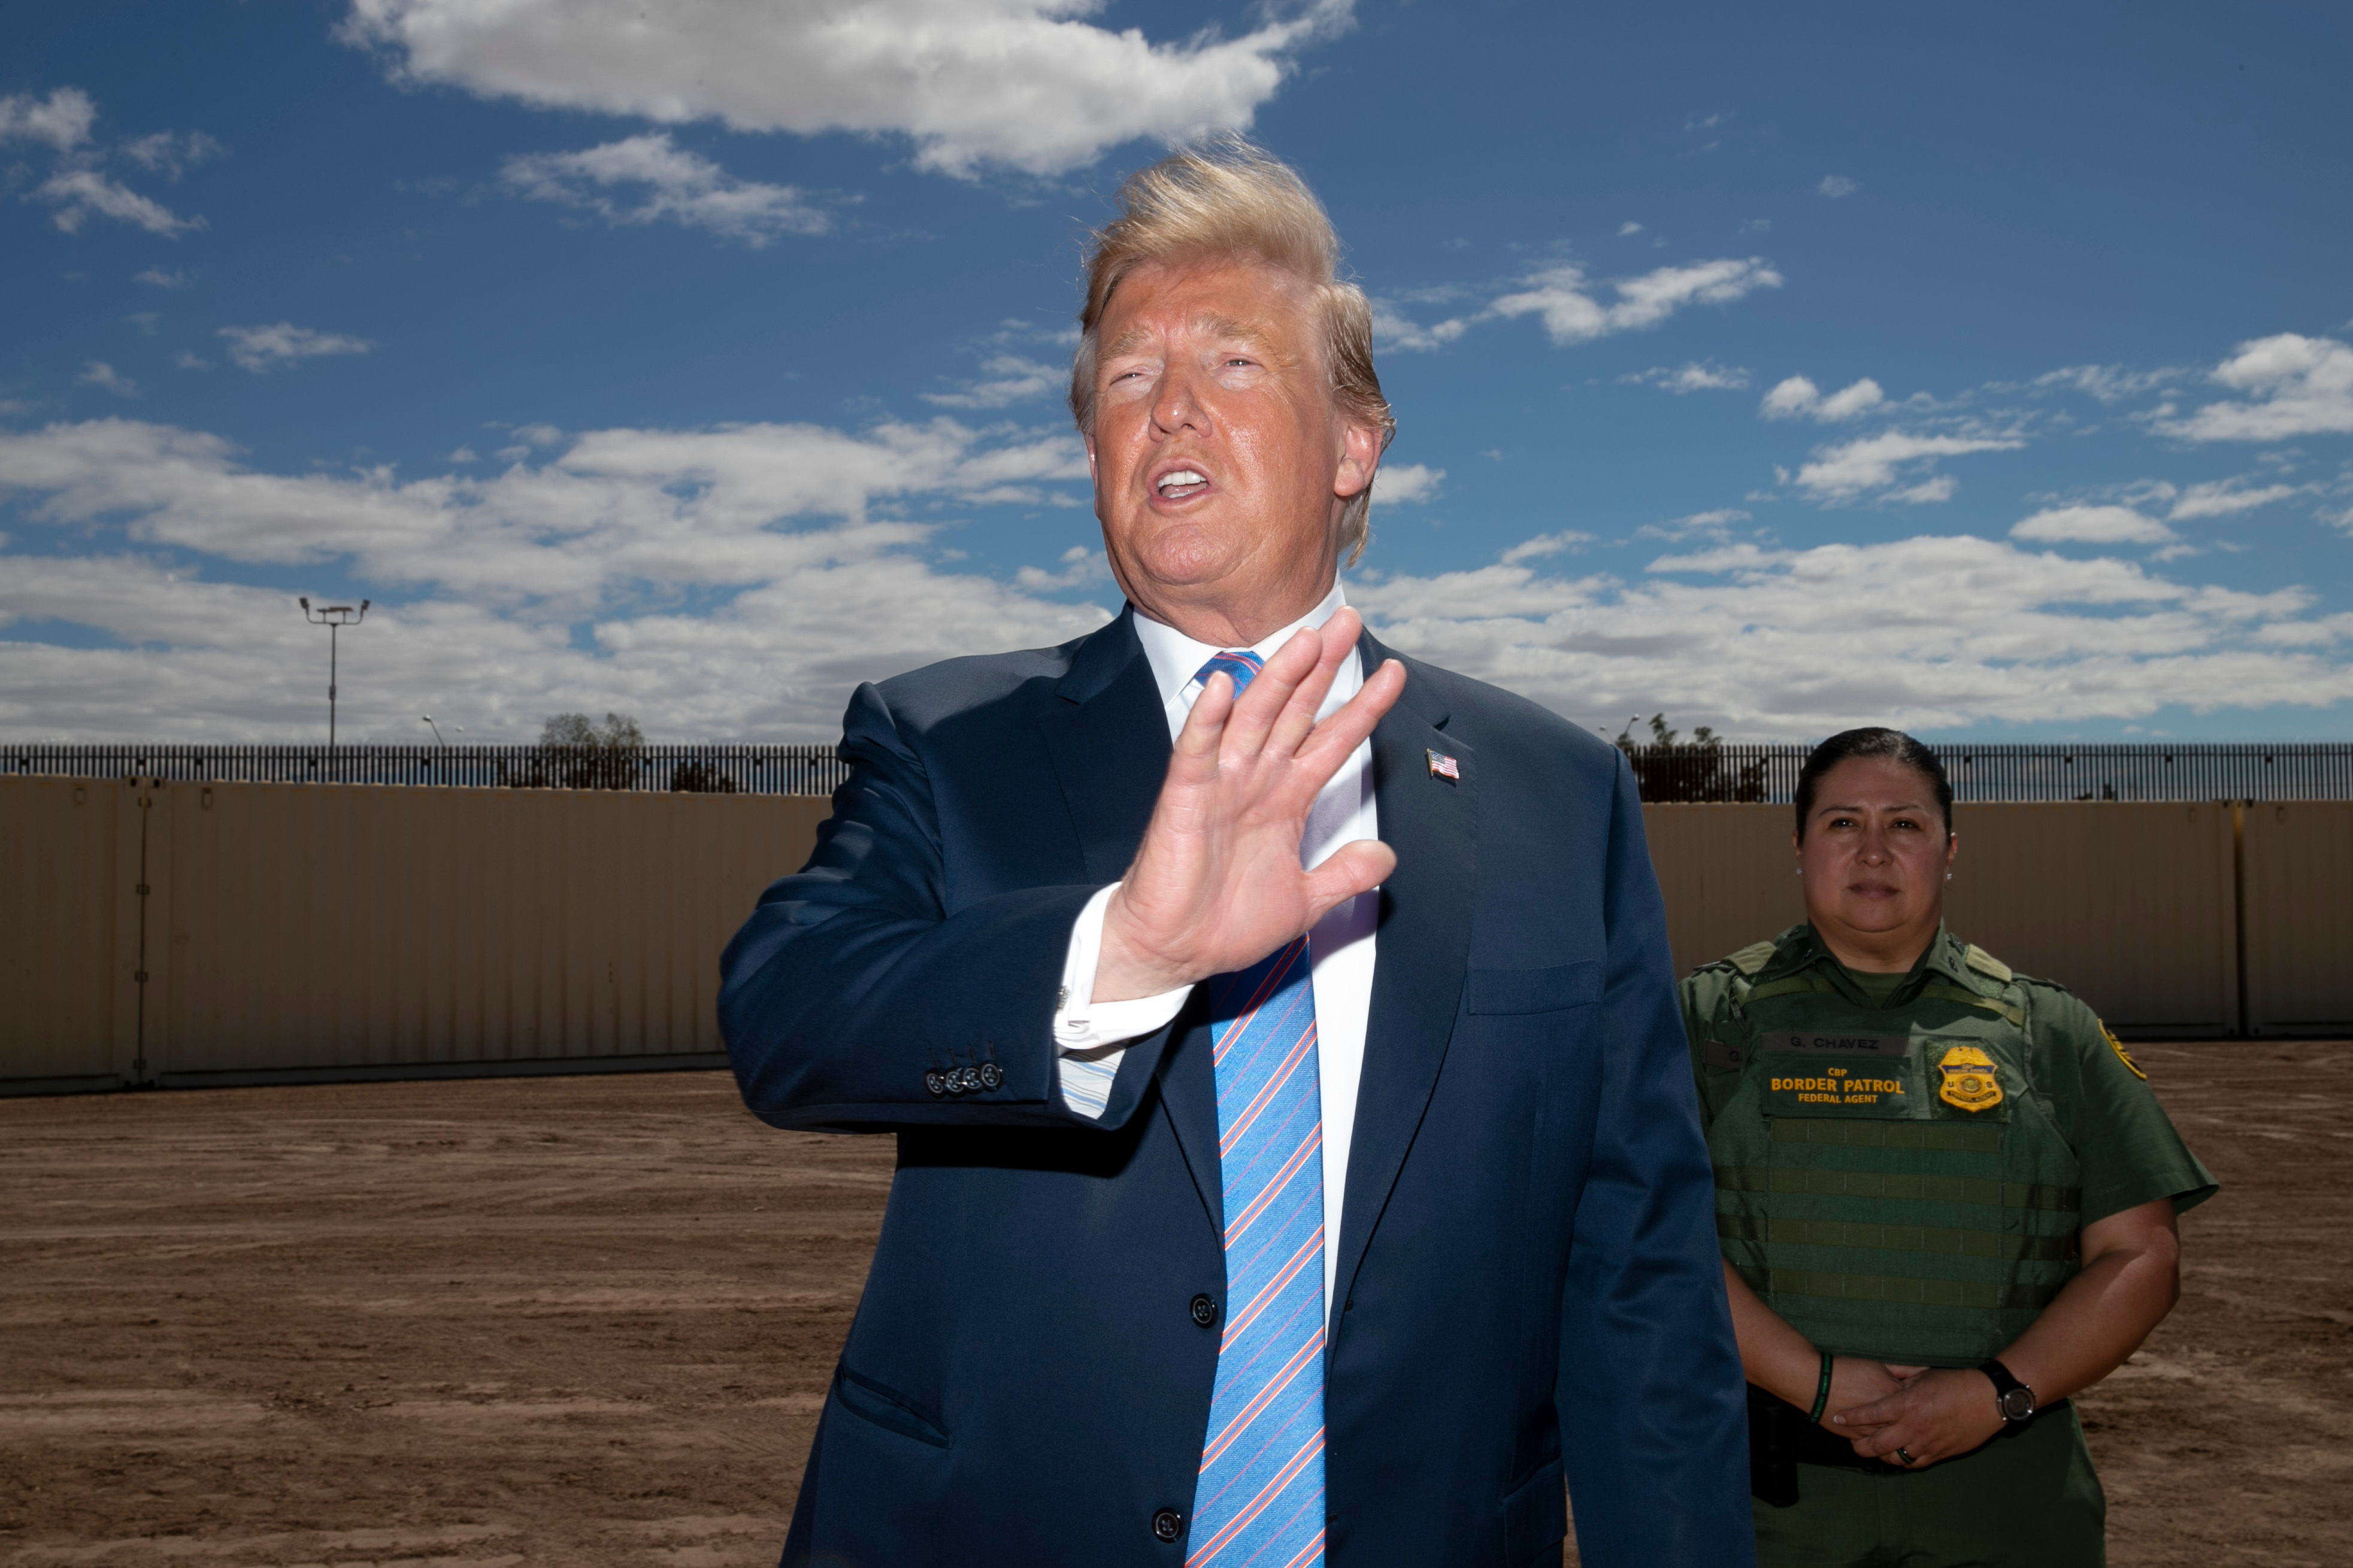 President Donald Trump speaks as he visits a new section of the border wall with Mexico in Calexico, CalifTrump, El Centro, USA - 05 Apr 2019